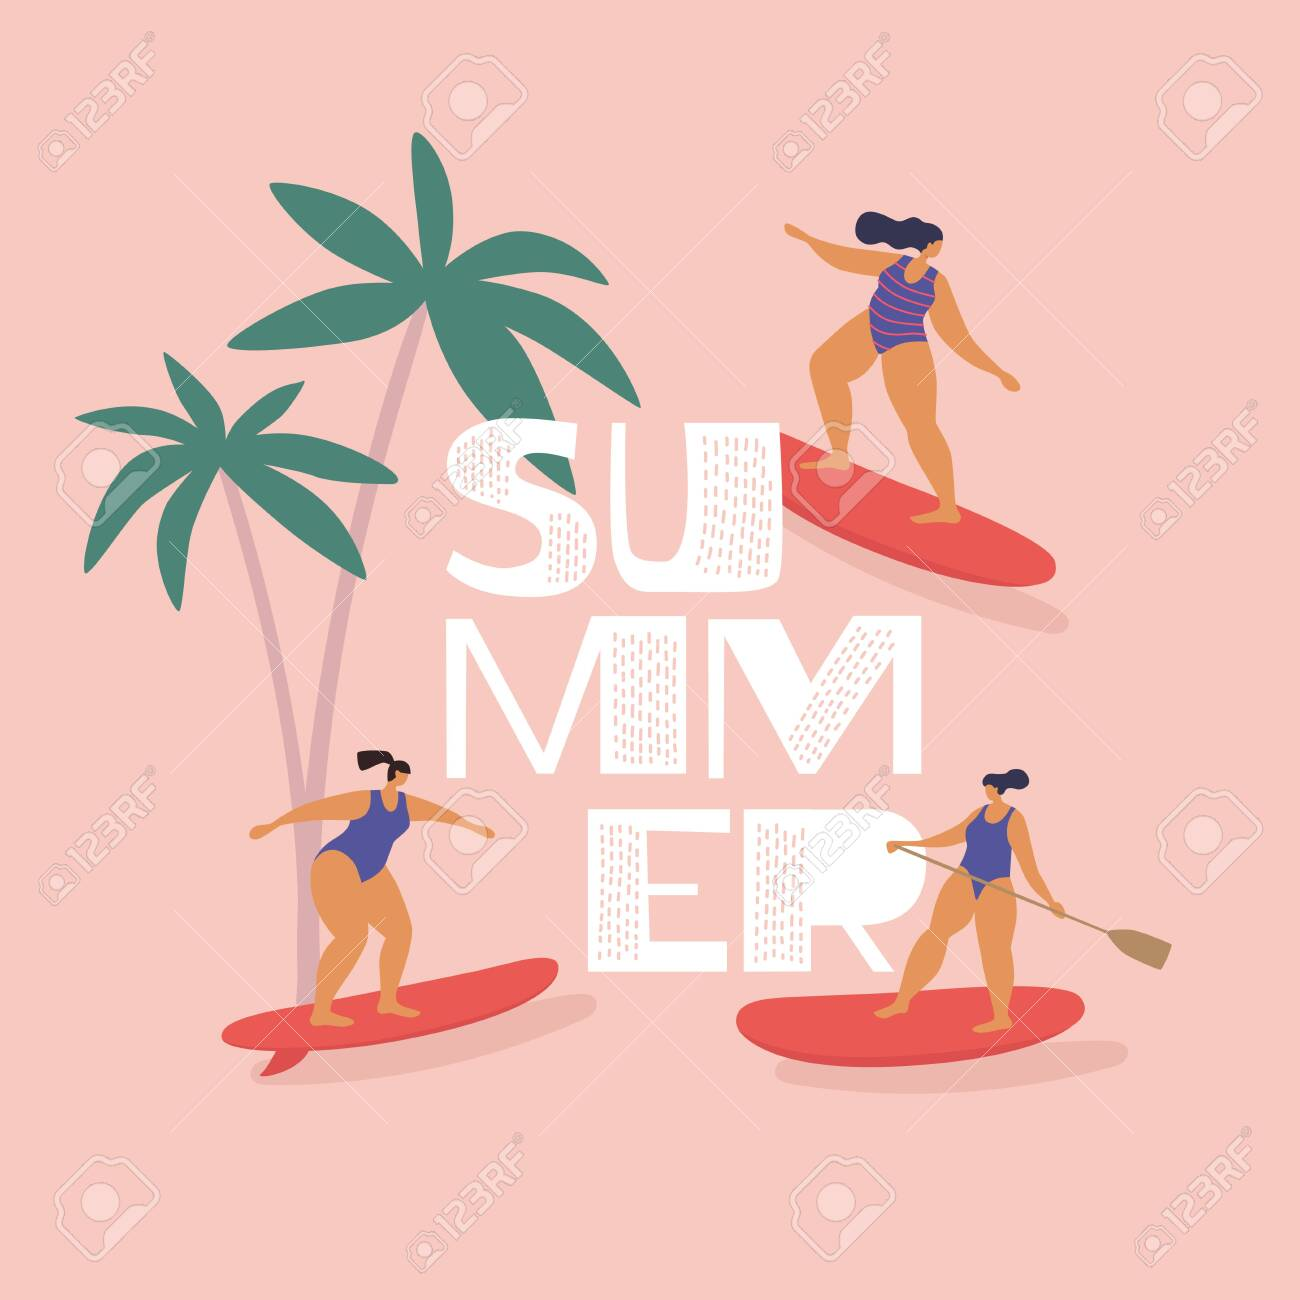 Cute girls in swimsuits ride surfing and sup-surfing. Rest in summer on tropical sea. Trendy types of water activities. Illustration in flat style on isolated background. - 150824854